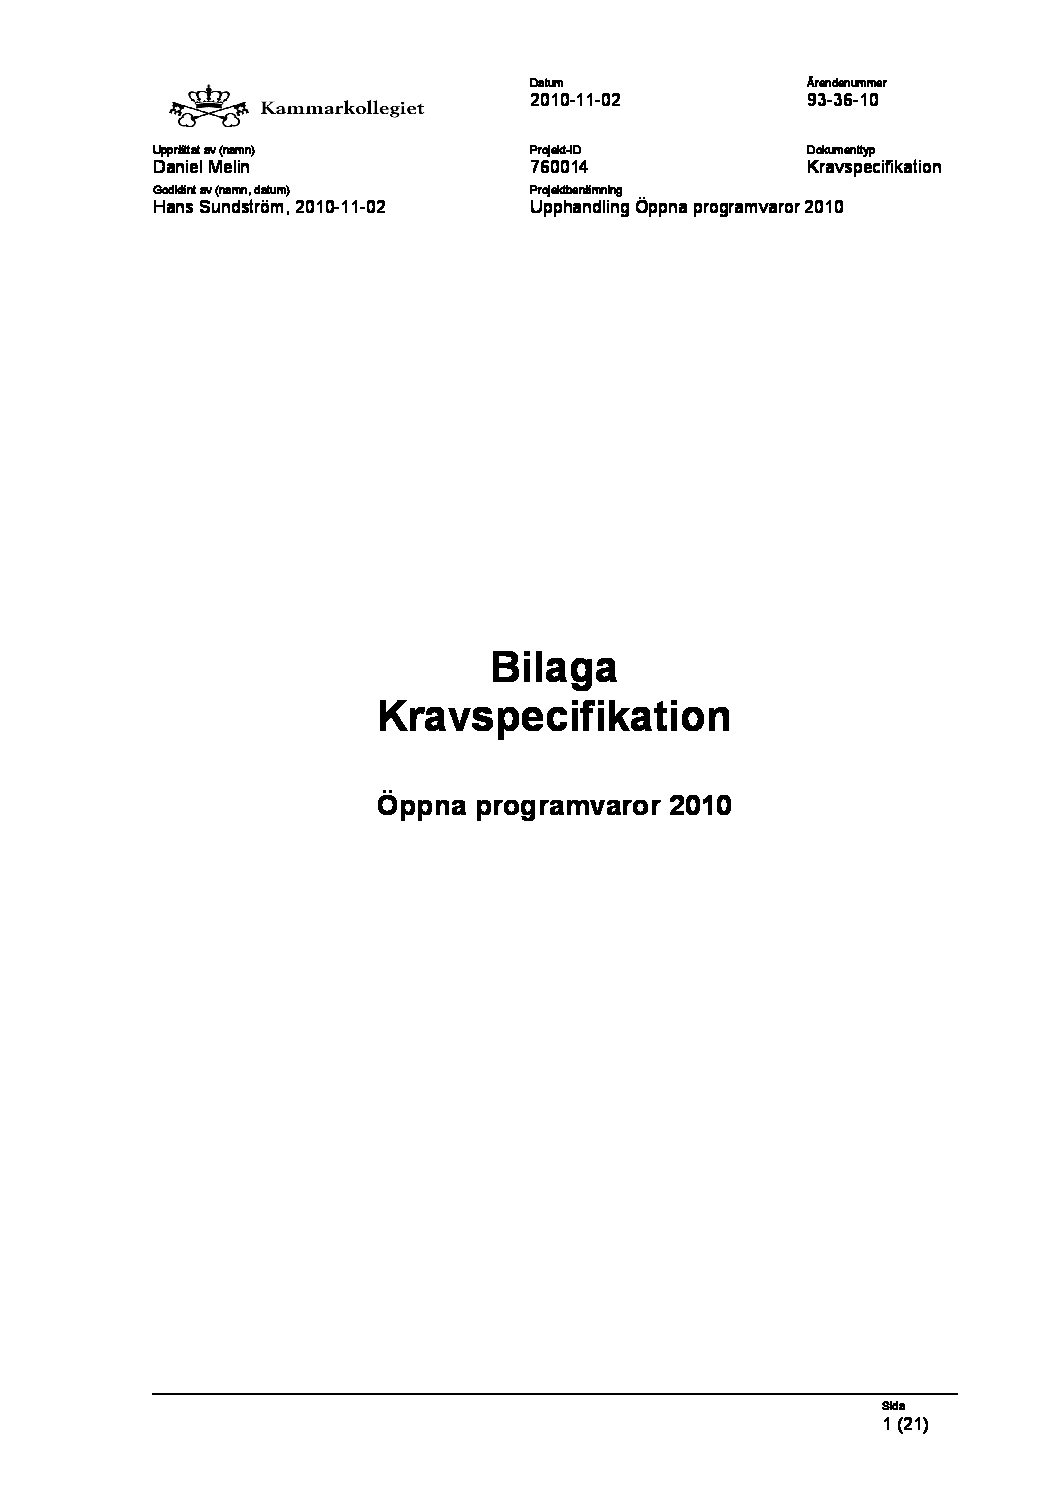 Bilaga Kravspecifikation